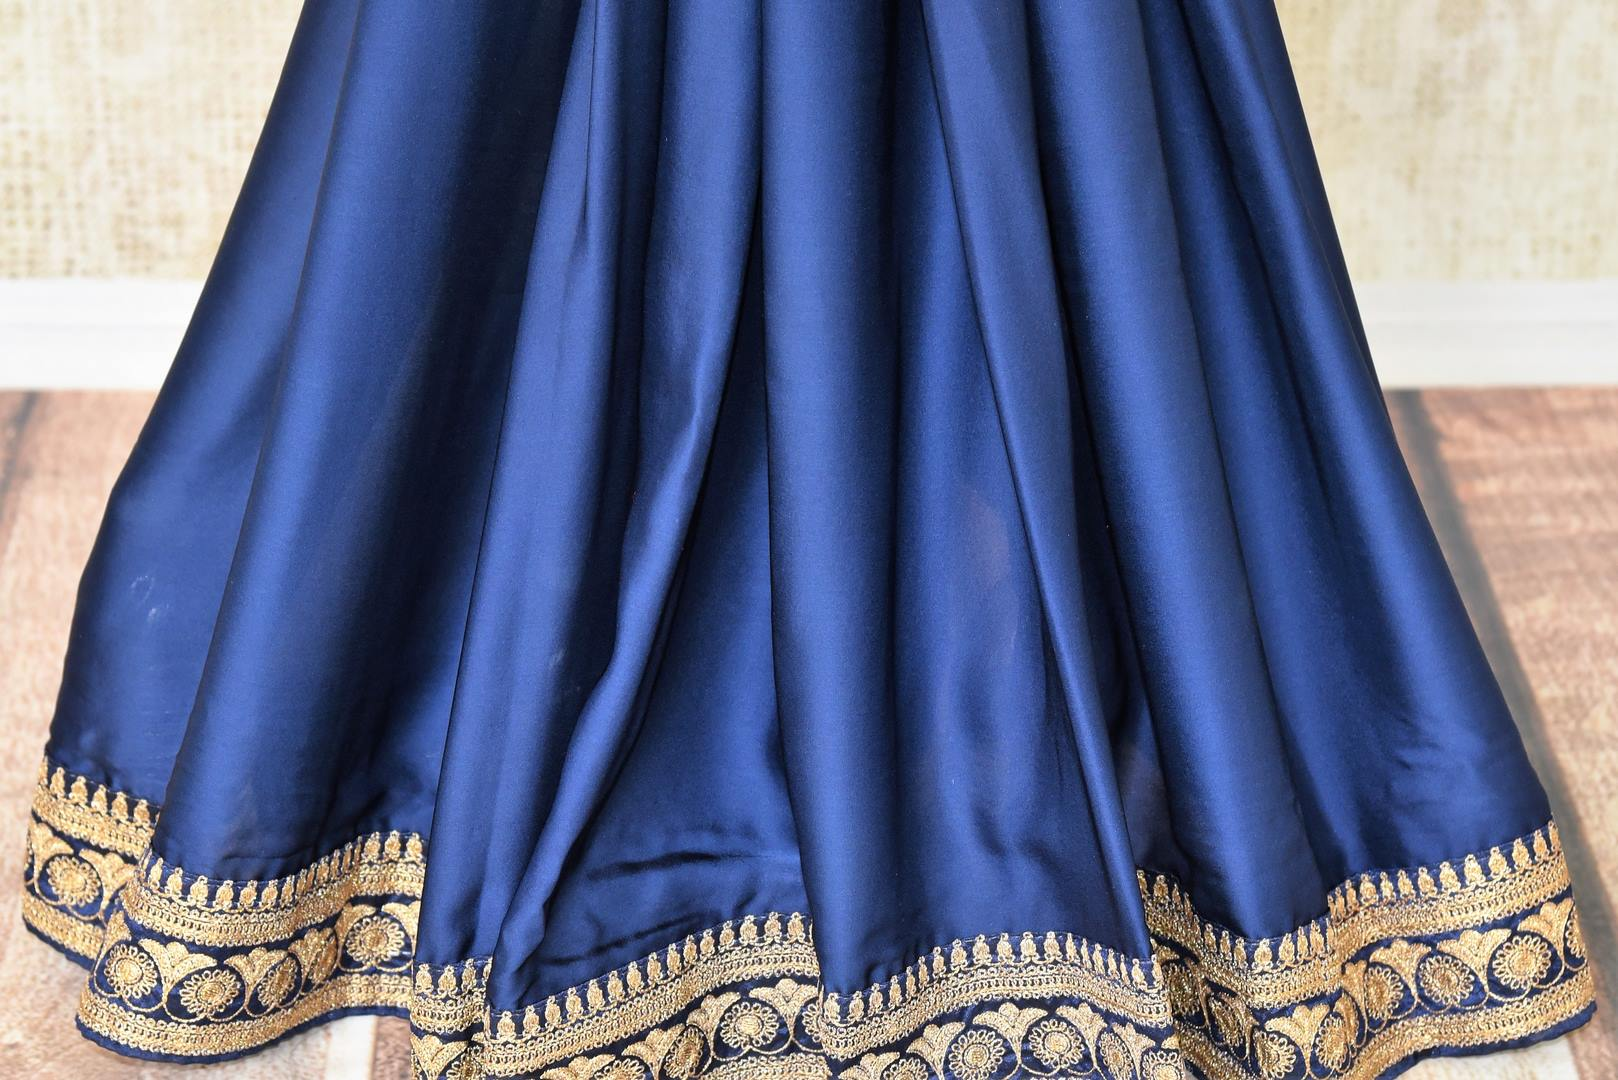 Buy designer blue crepe saree online in USA with embroidered border. Make your saree look absolutely one of a kind with Indian designer saris, bridal sarees, party sarees from Pure Elegance Indian clothing store in USA or shop online.-pleats